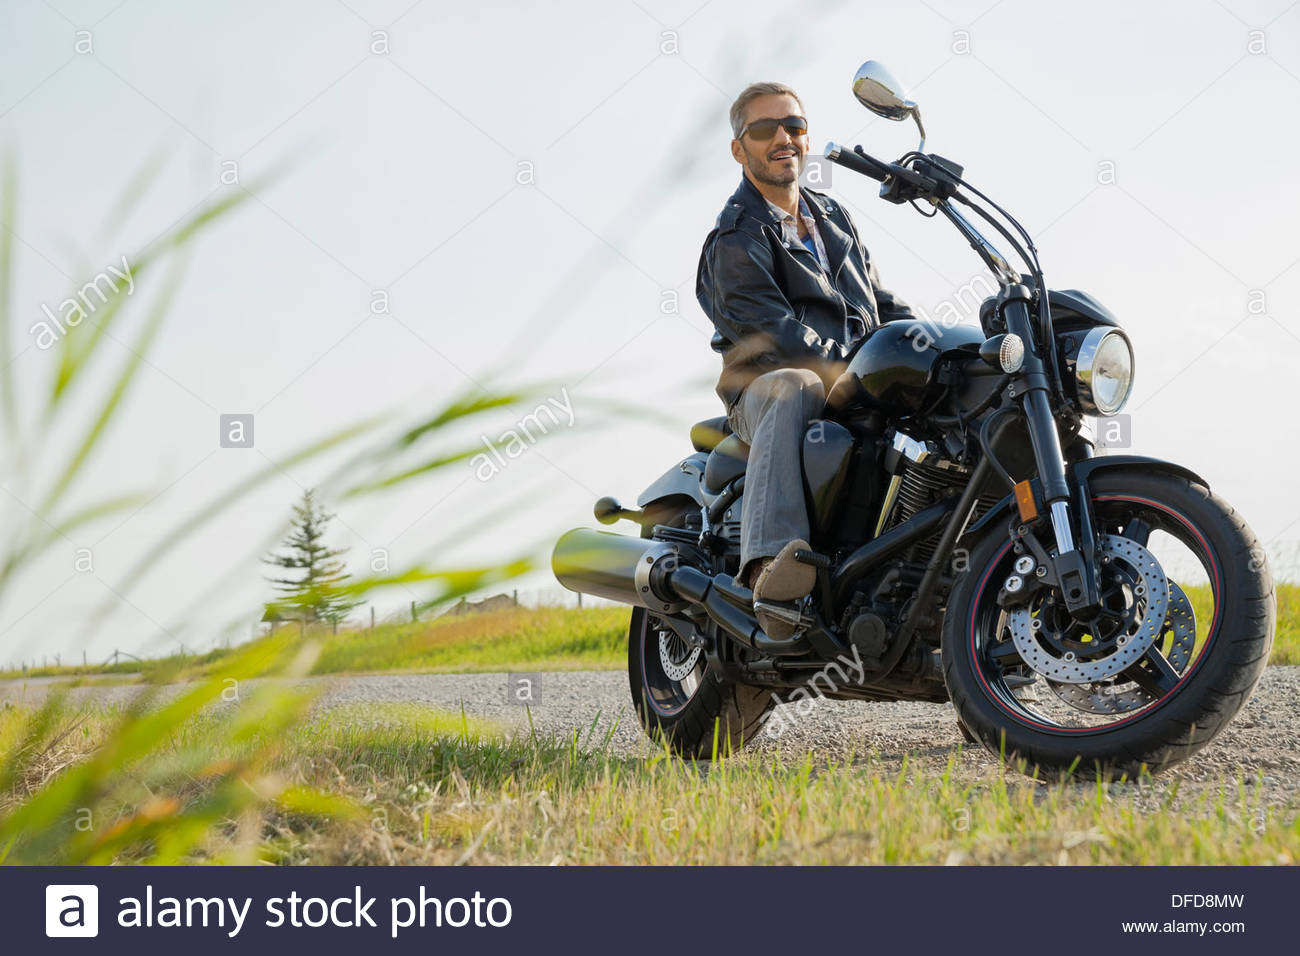 Portrait of biker sitting on motorcycle in the country - Stock Image